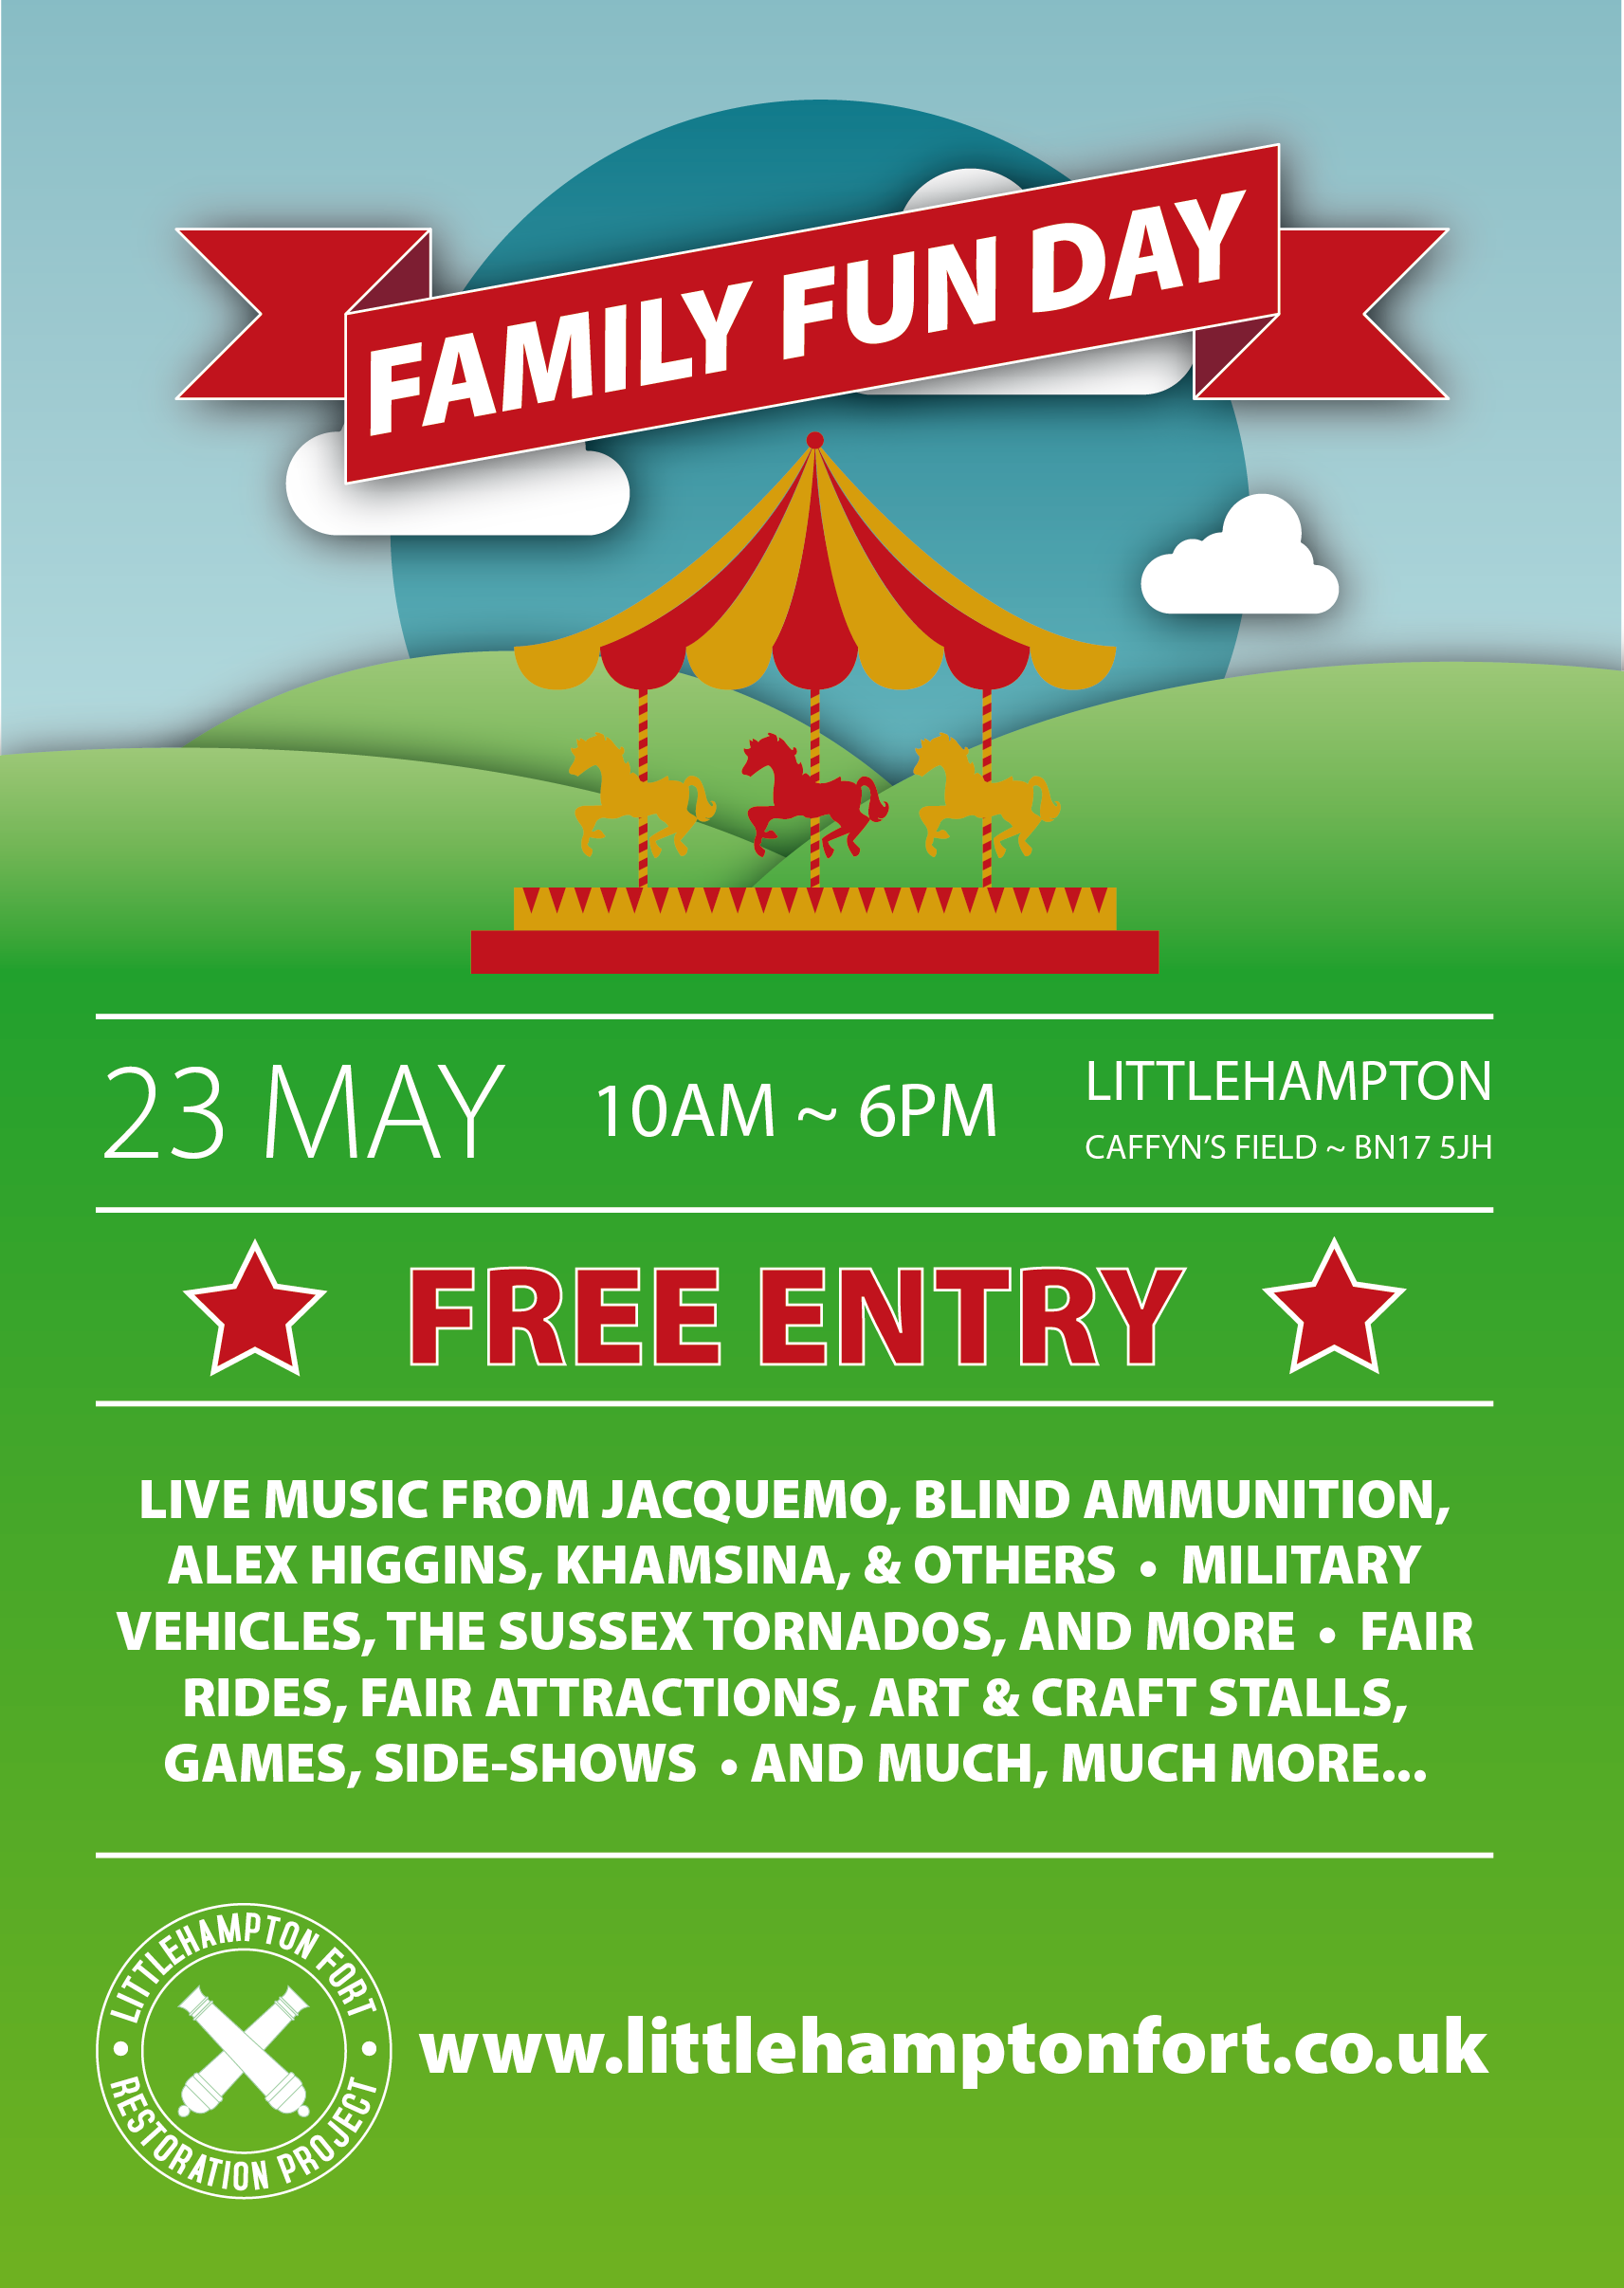 Fun Day 2015 Littlehampton Poster Graphic Design